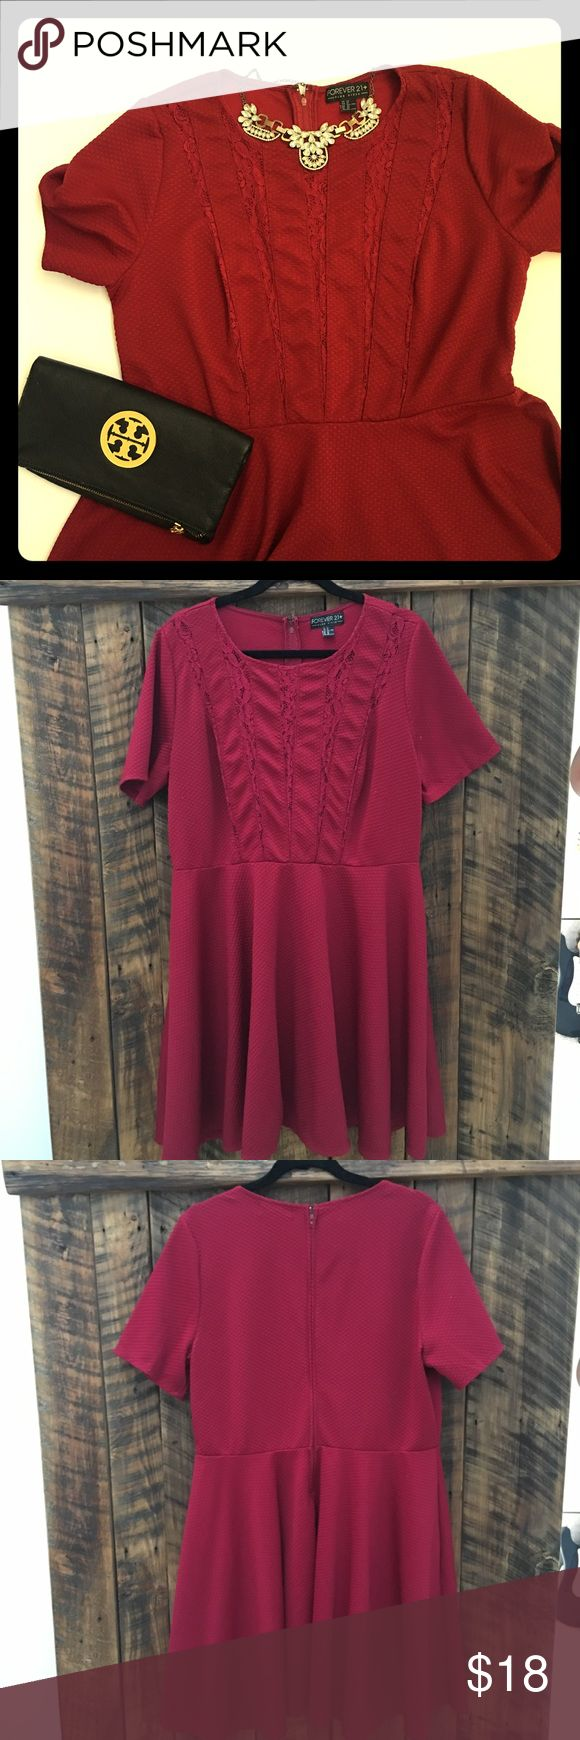 Forever 21 Wine Colored Dress with Lace detail Great wine colored dress! Super comfortable and stylish! The lace is see thru. In great used condition., only worn and washed a few times. Does have some piling which can be seen in last photo. Sz 2x Forever 21 Dresses